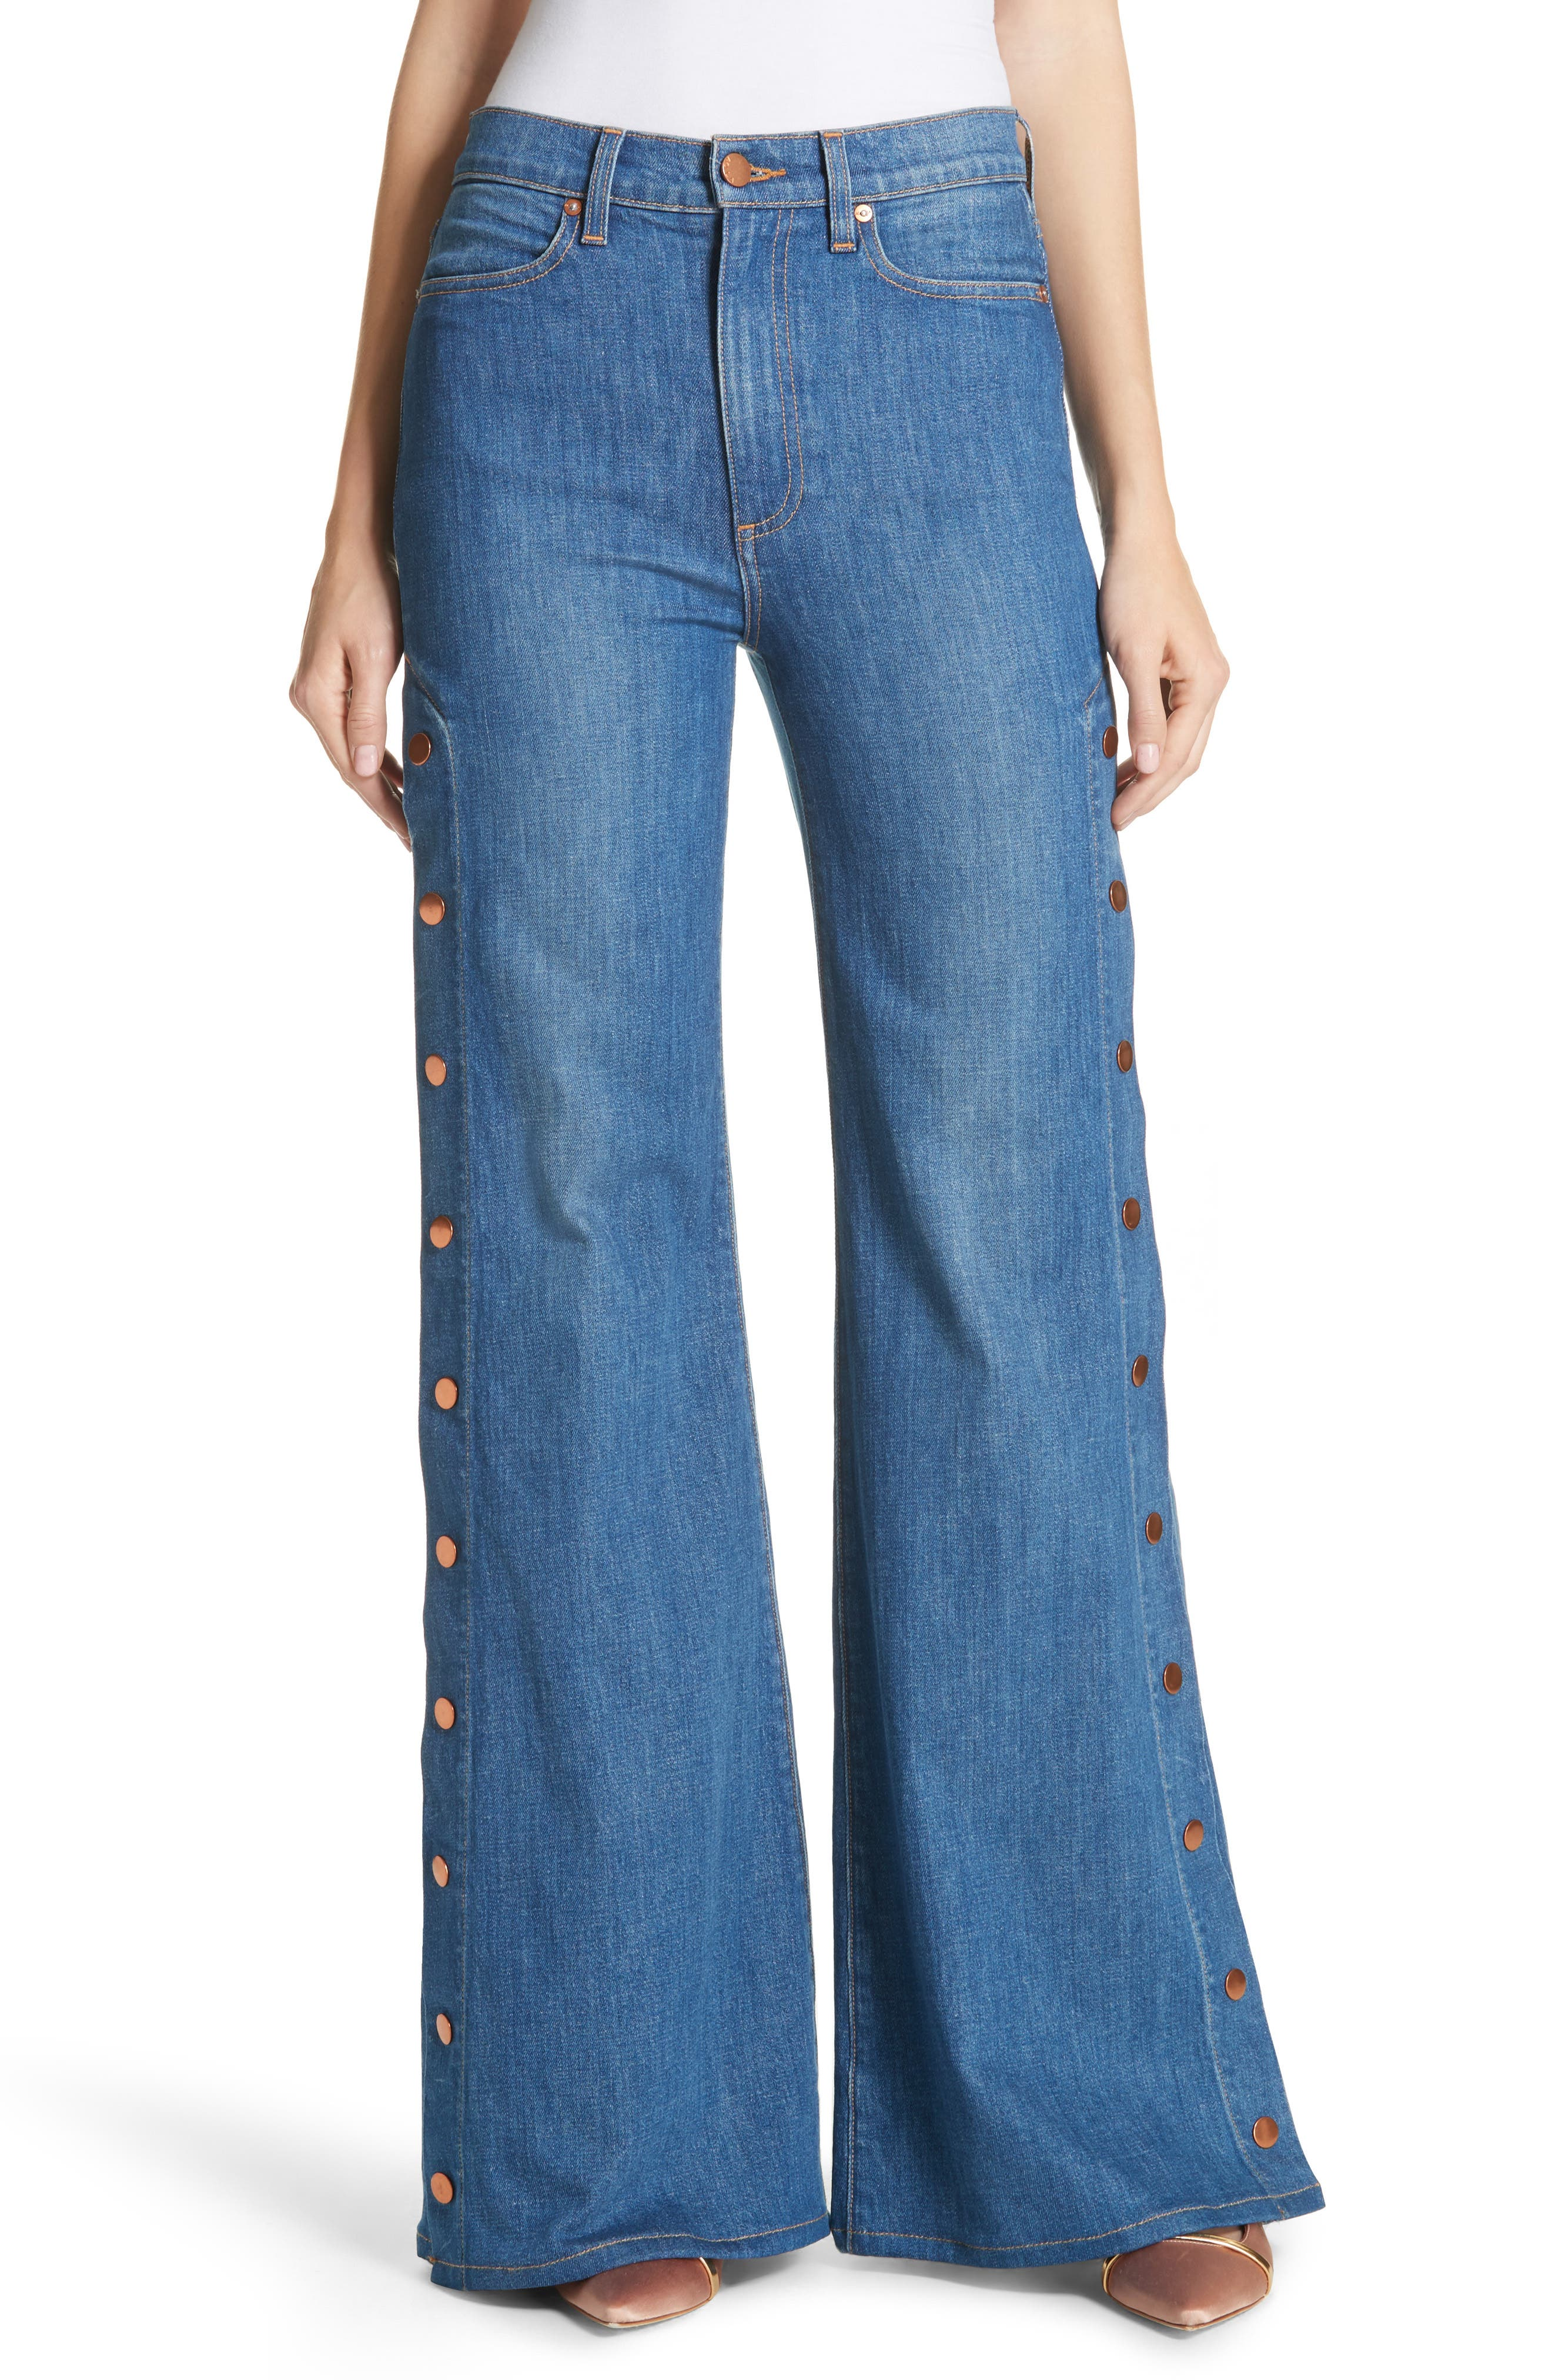 AO.LA Gorgeous Snap Side Flare Leg Jeans,                             Main thumbnail 1, color,                             460